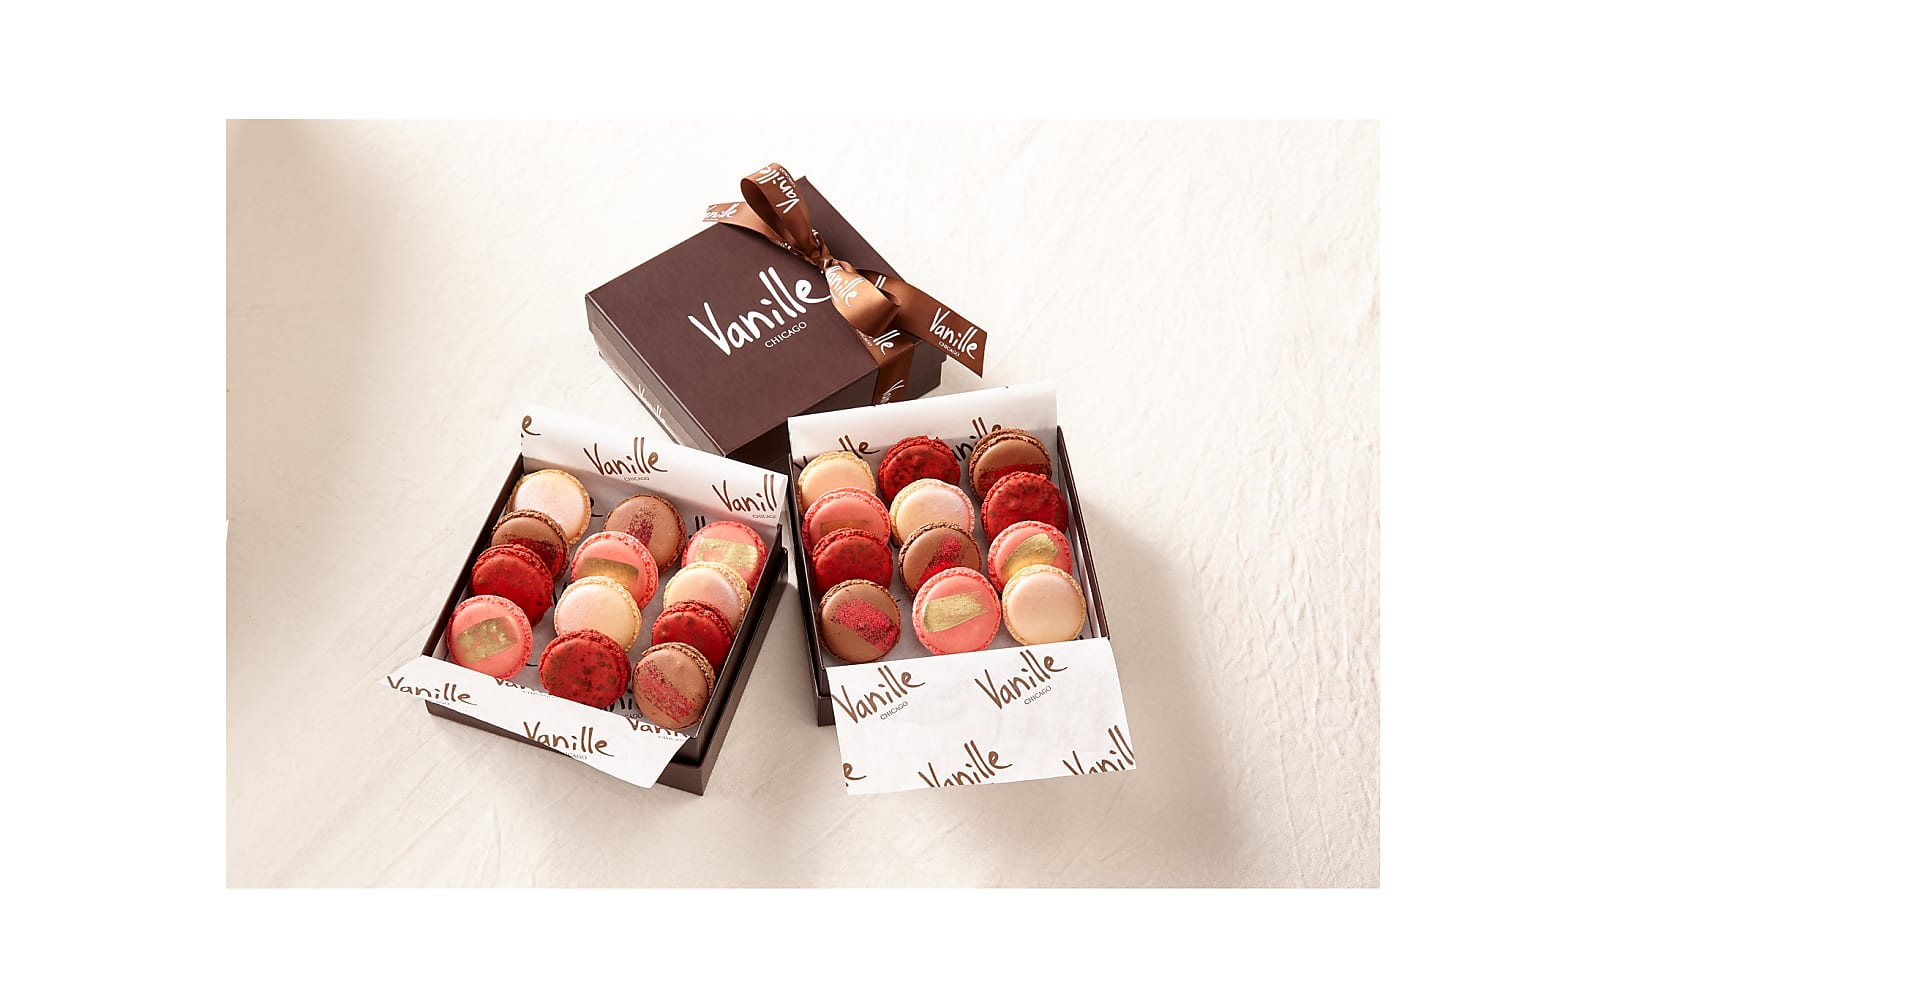 L'amour Macaron Gift Box - Image 2 Of 2